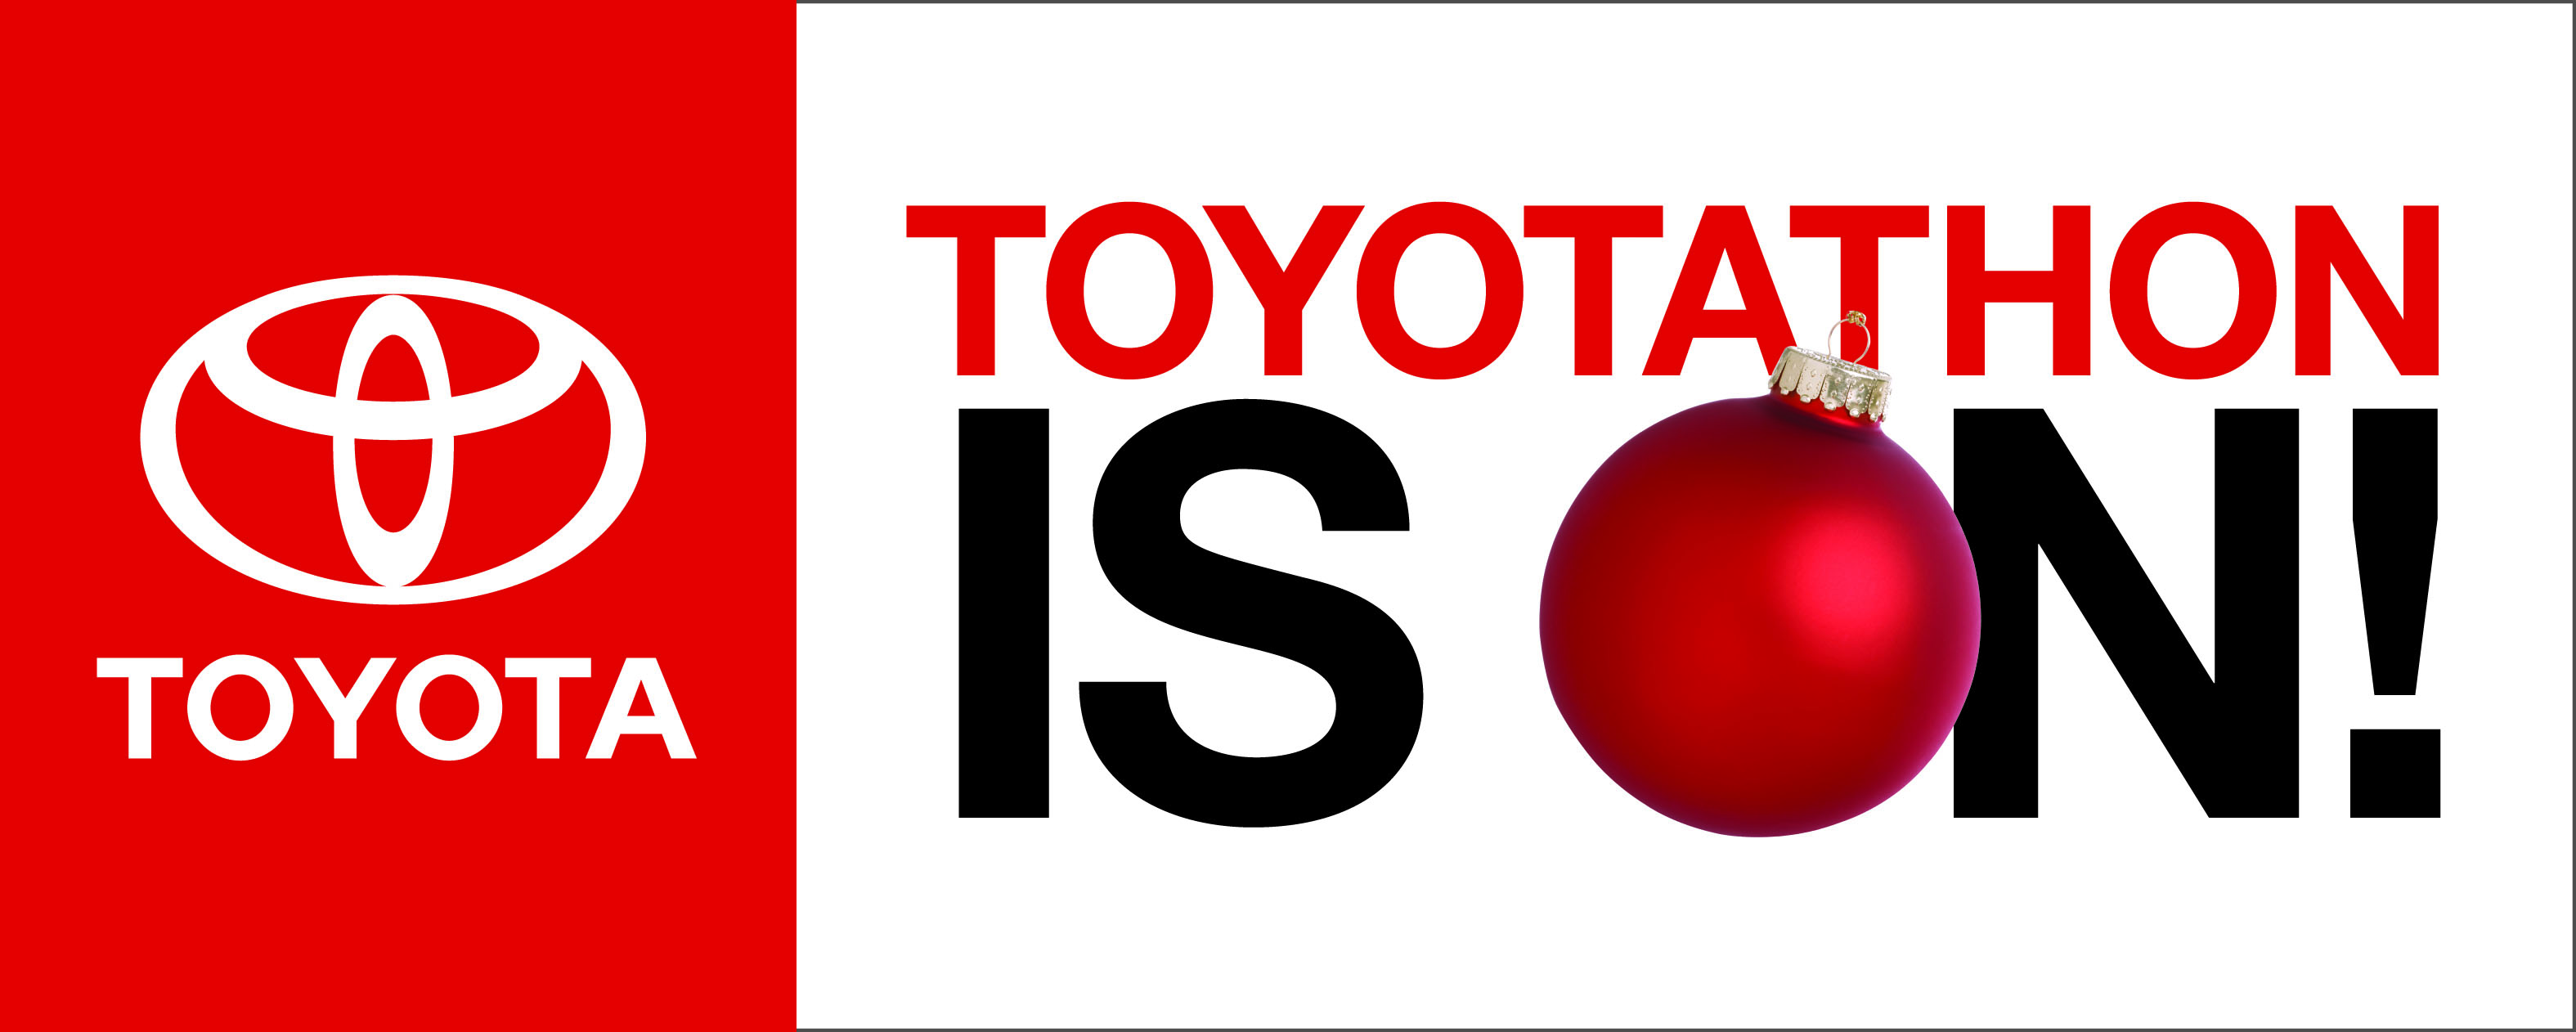 Toyota Certified Pre Owned 2 >> Toyotathon is On at Kendall Toyota! - Kendall Toyota